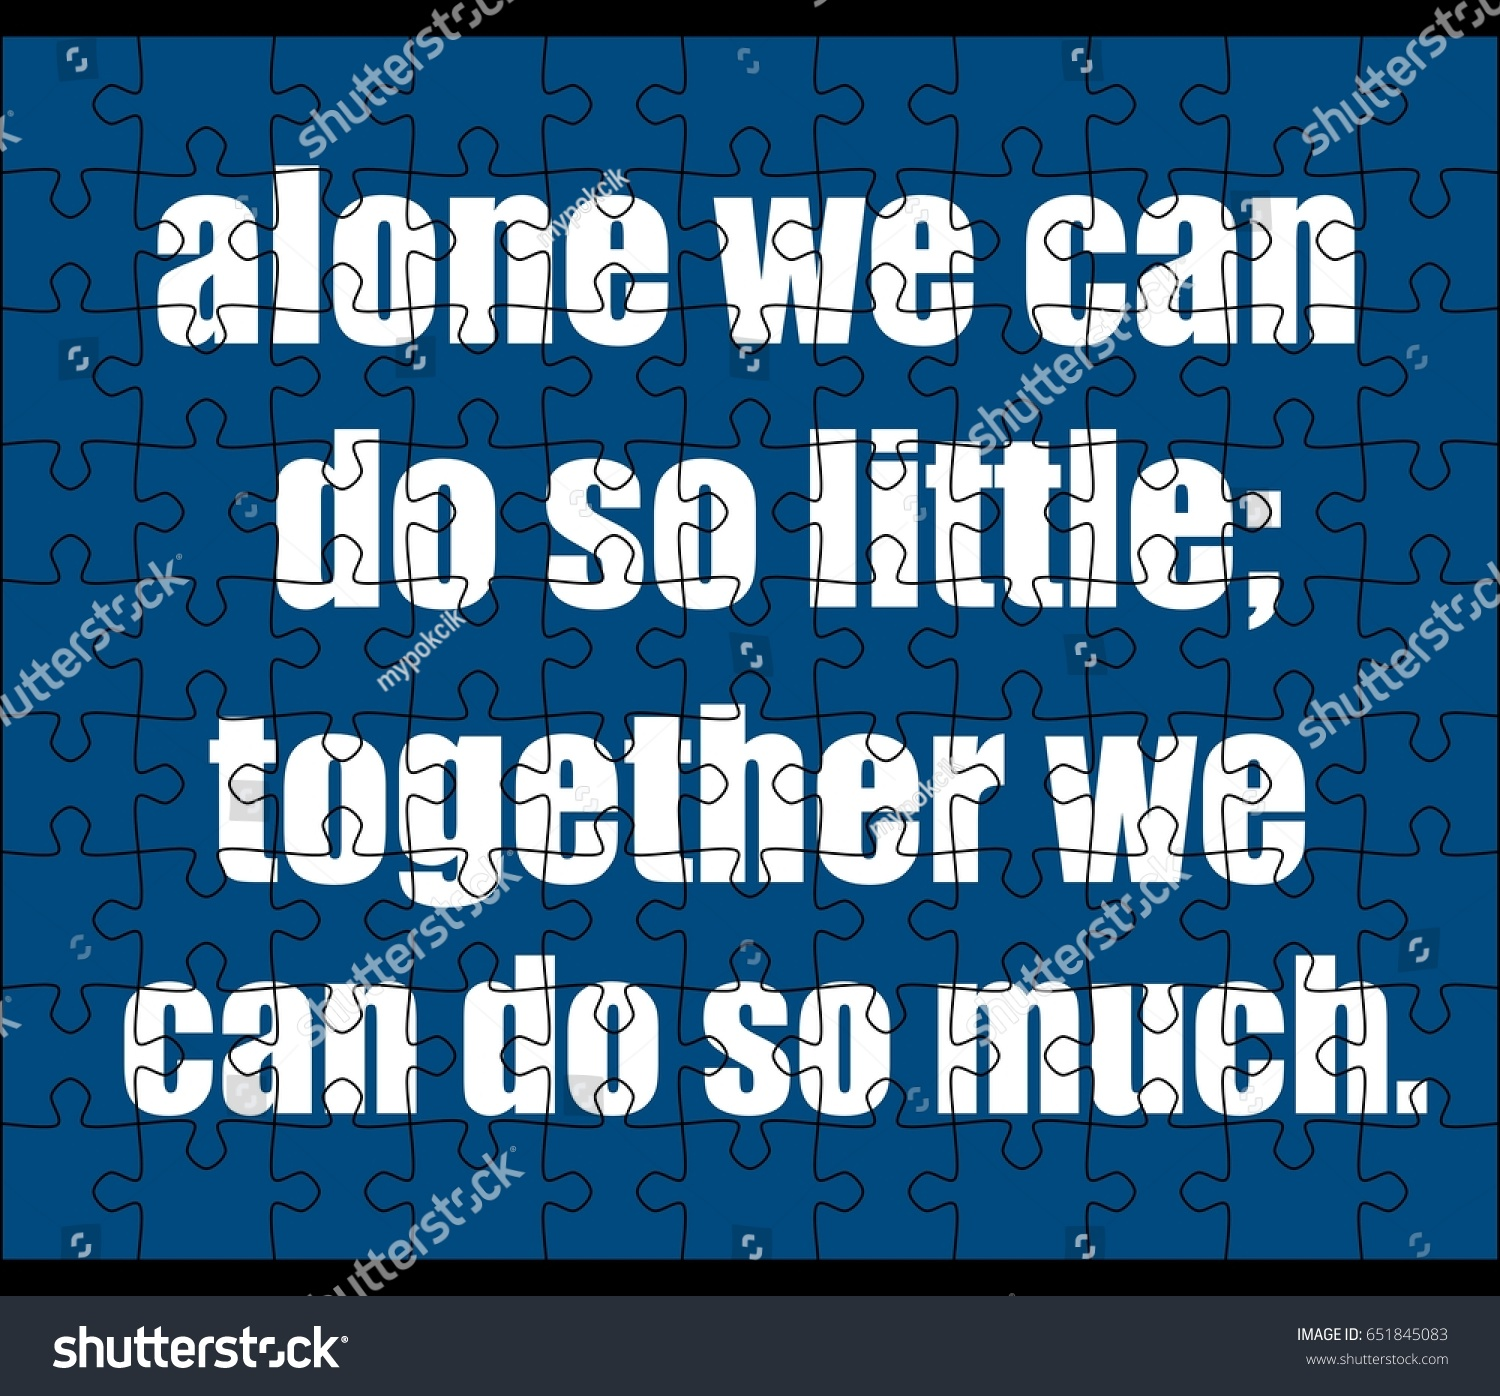 Teamwork Quotes Teamwork Quotes Jigsaw Puzzle Stock Illustration 651845083